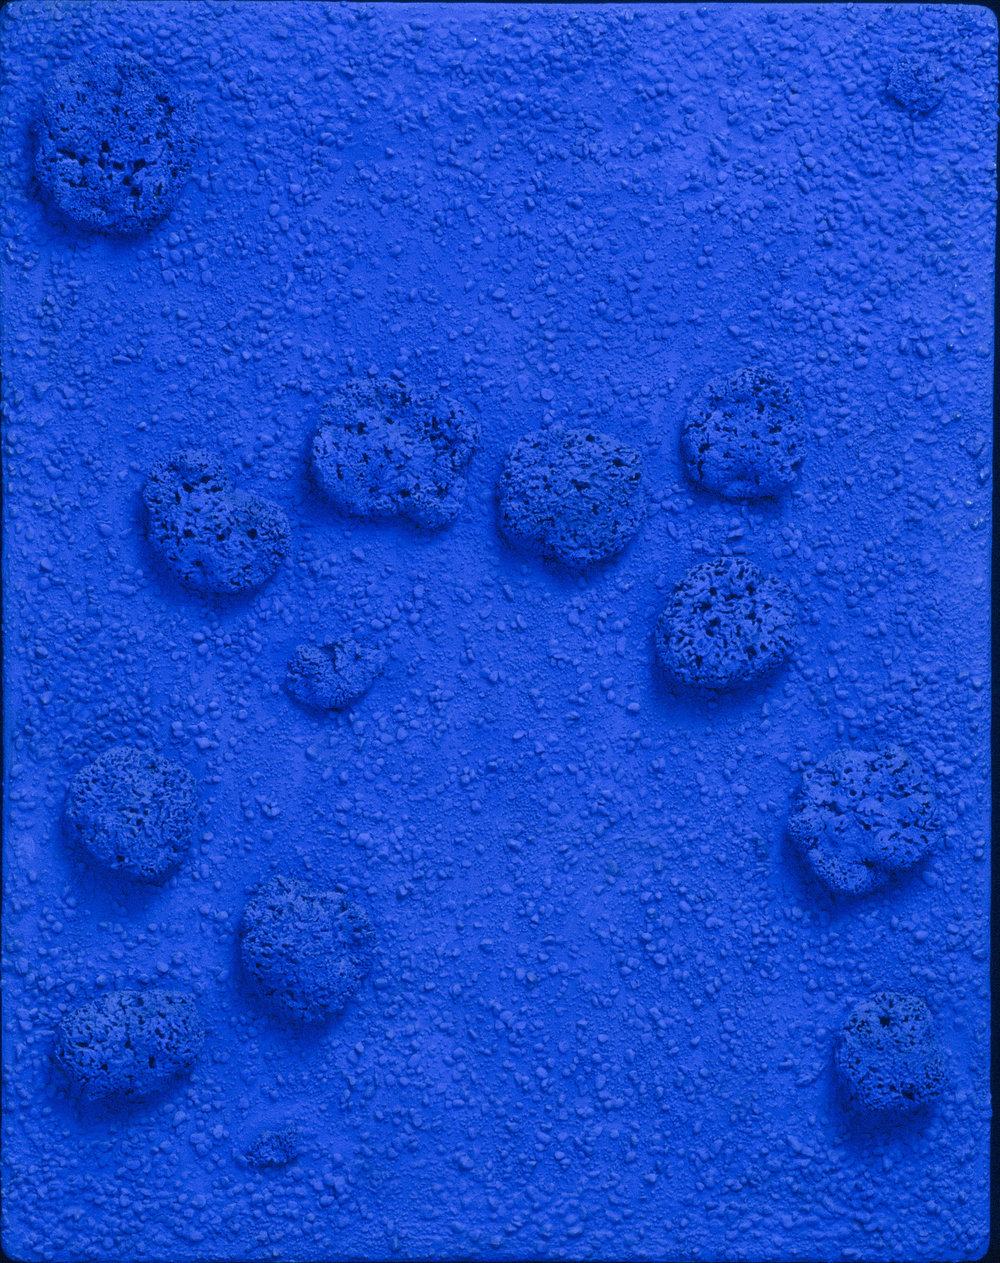 Blue Monochrome Sponge Relief (RE24), 1960 Yves Klein, French, 1928-1962 Sponges, pebbles, dry pigment in synthetic resin on wood board 57 1/4 x 45 3/8 x 3 3/4 in. (145.4 x 115.3 x 9.5 cm) Gift of Mr. and Mrs. Joseph H. Hazen, P.961.288 © 2017 Yves Klein /ADAGP, Paris; Artists Rights Society (ARS), NY